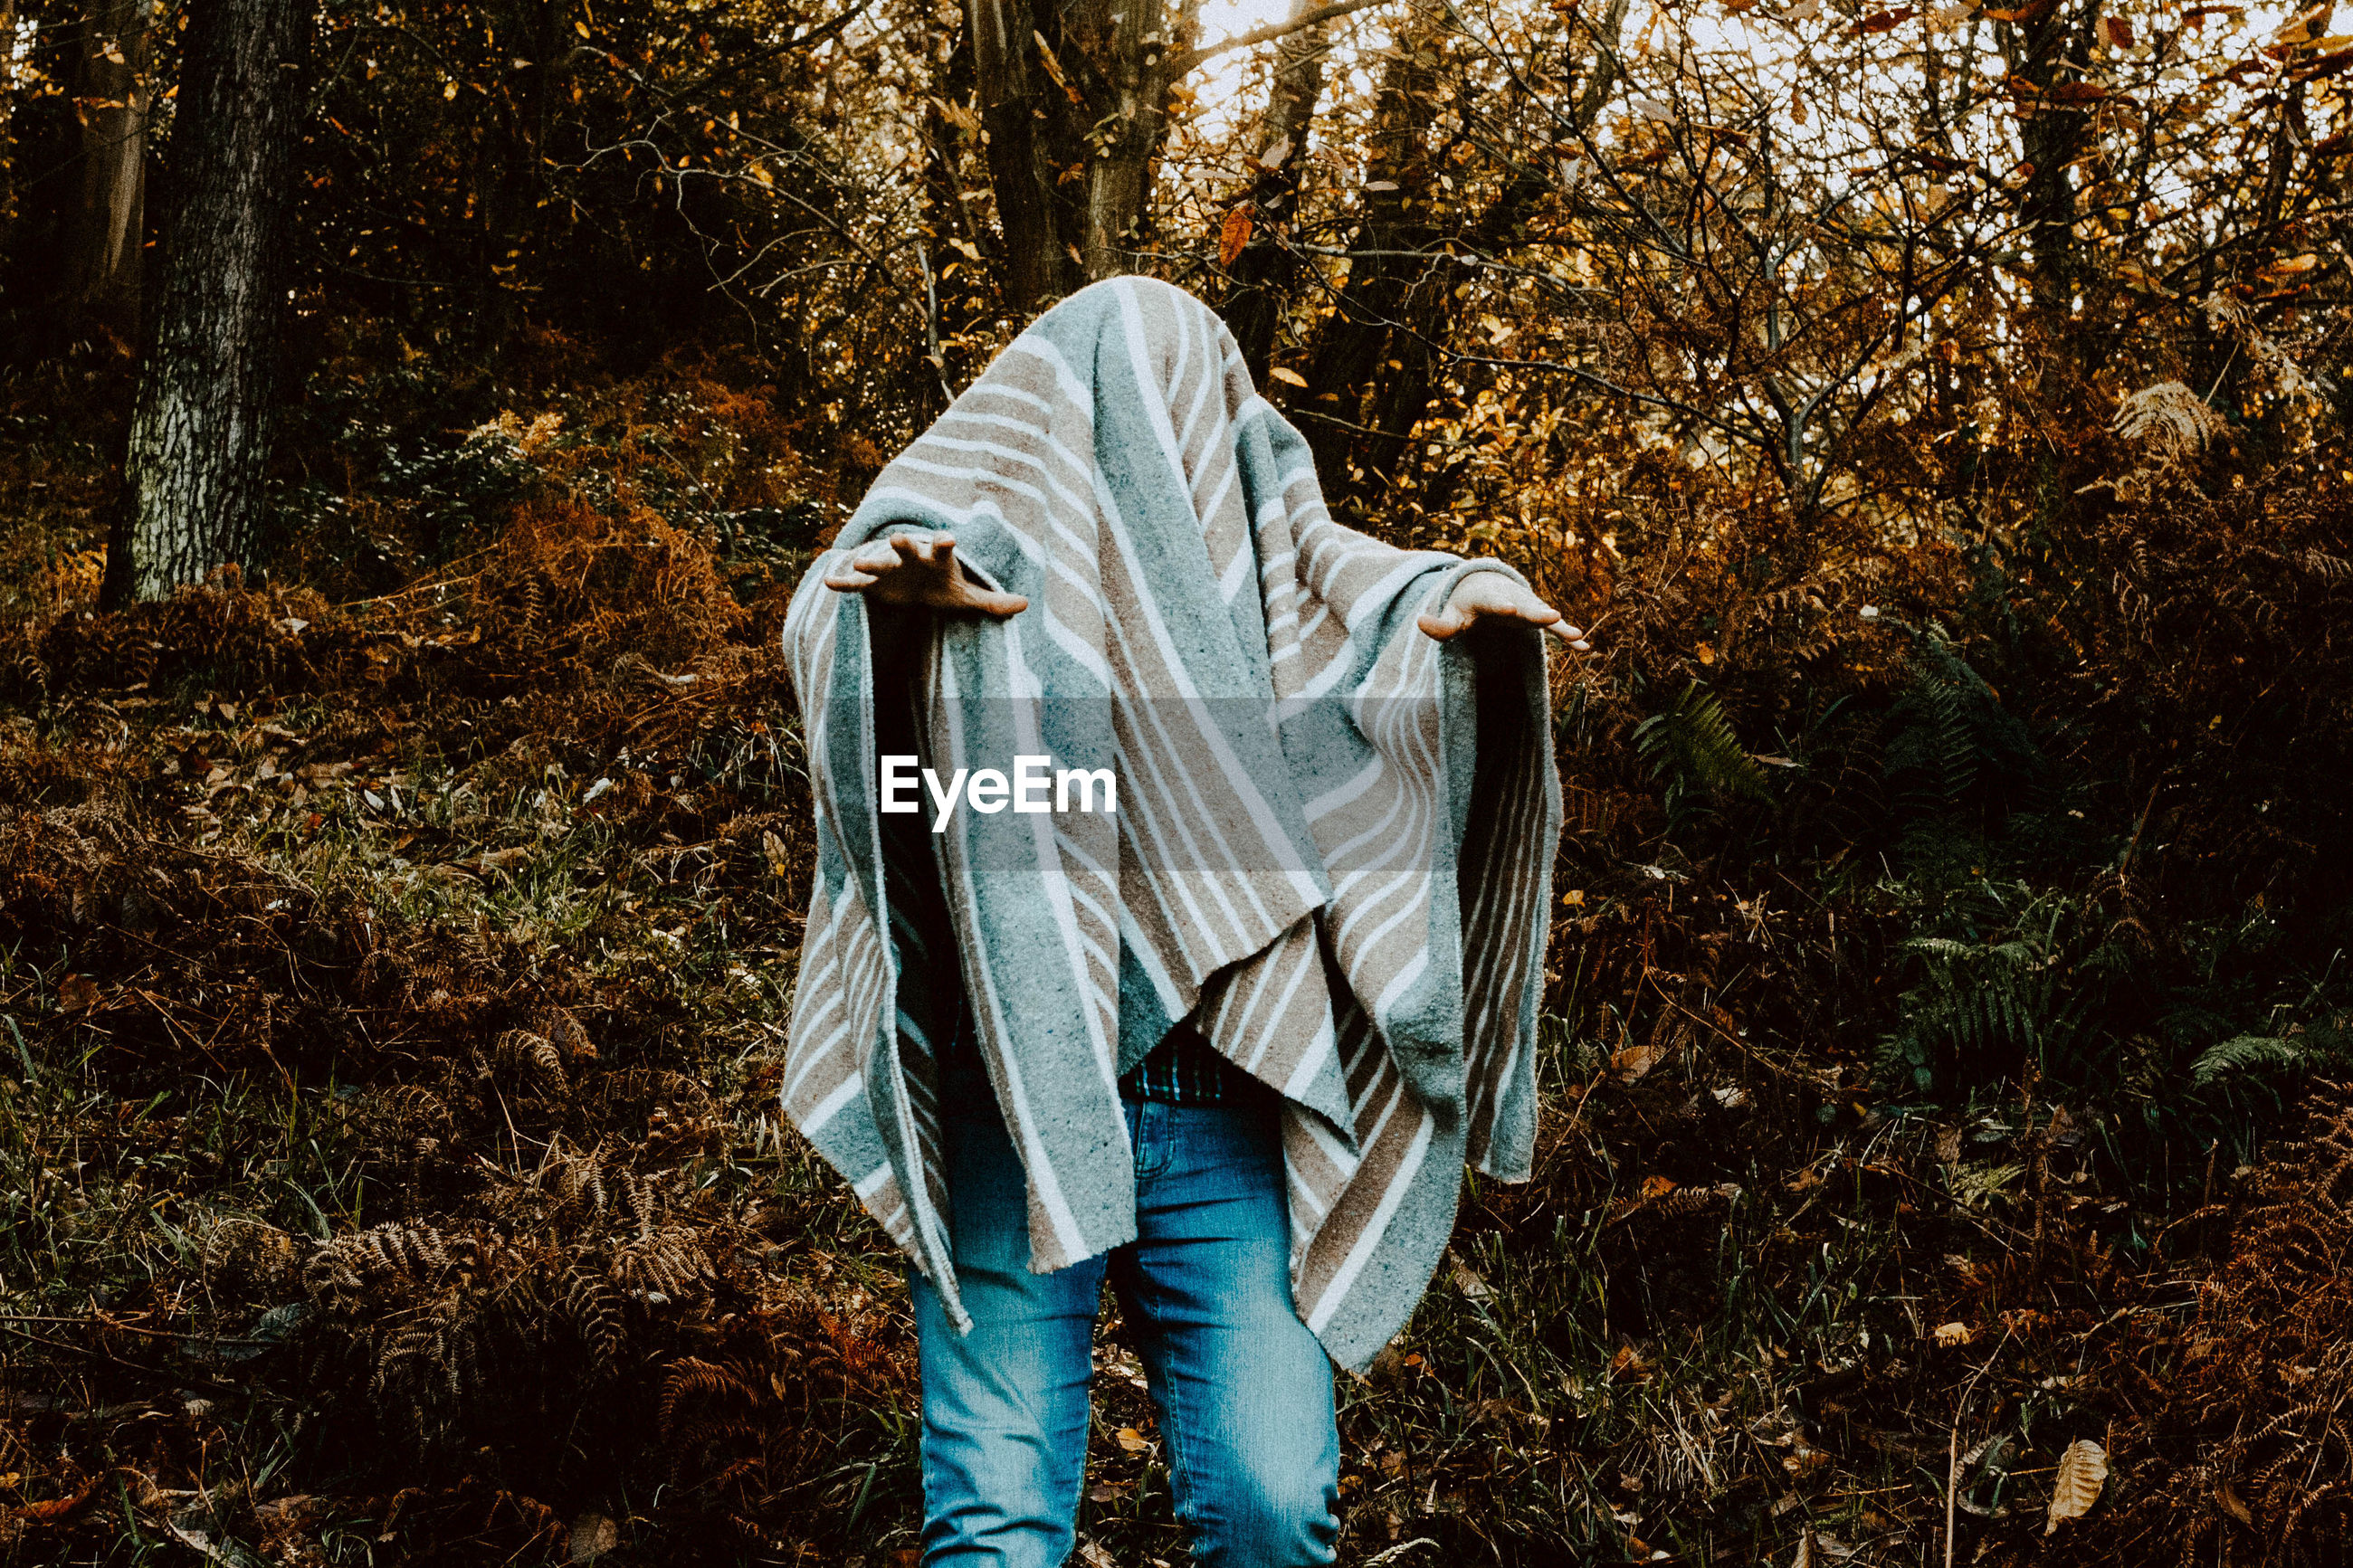 Man covered in blanket gesturing while standing in forest